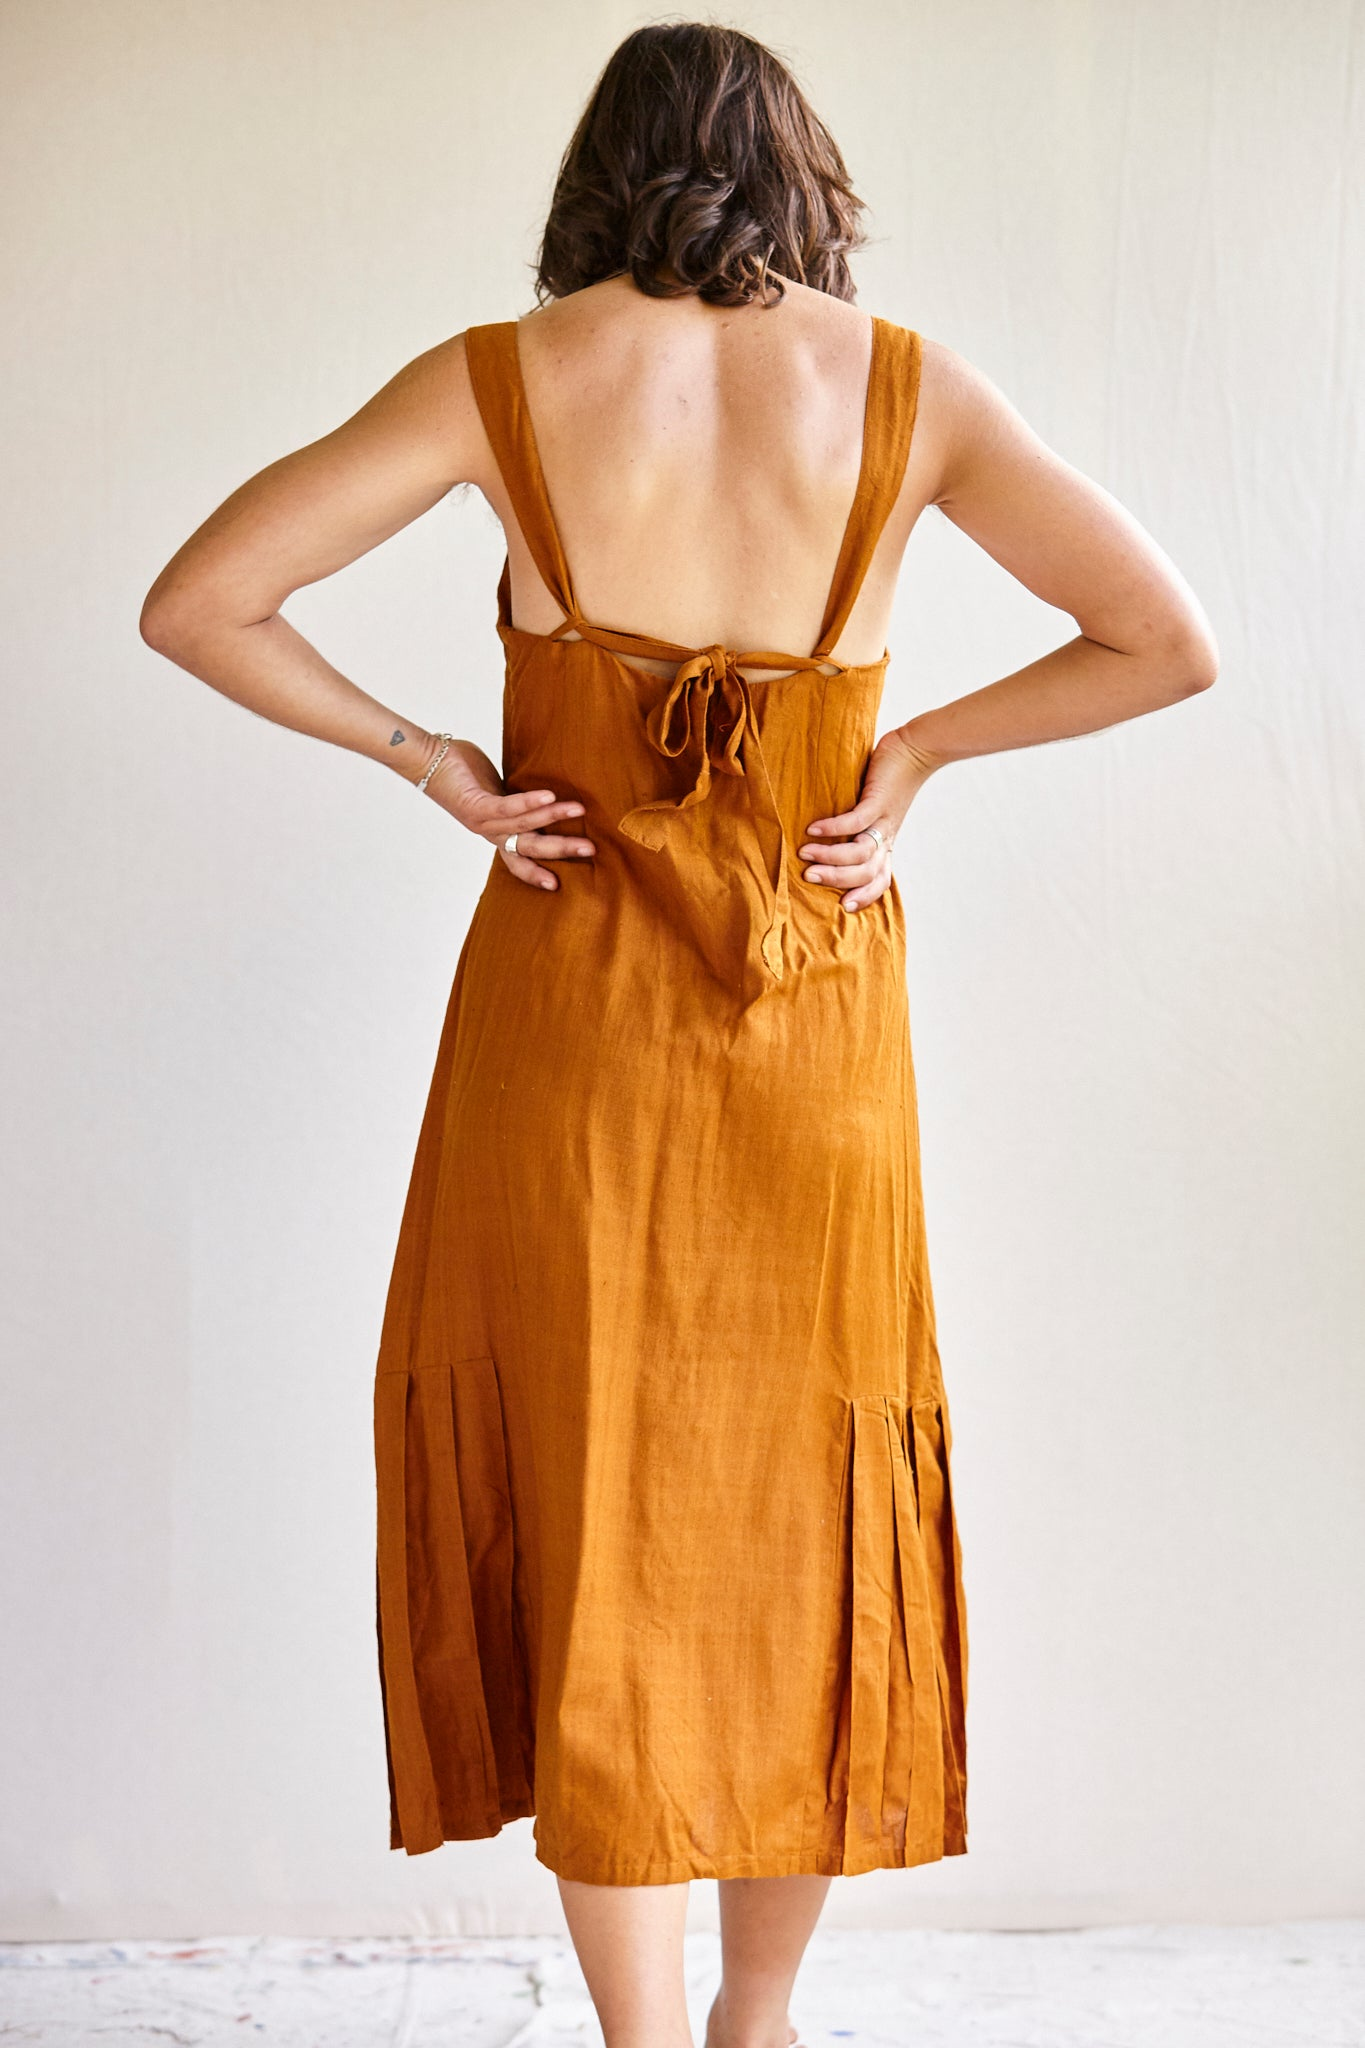 The Pina Dress - hand woven khadi in Tobacco